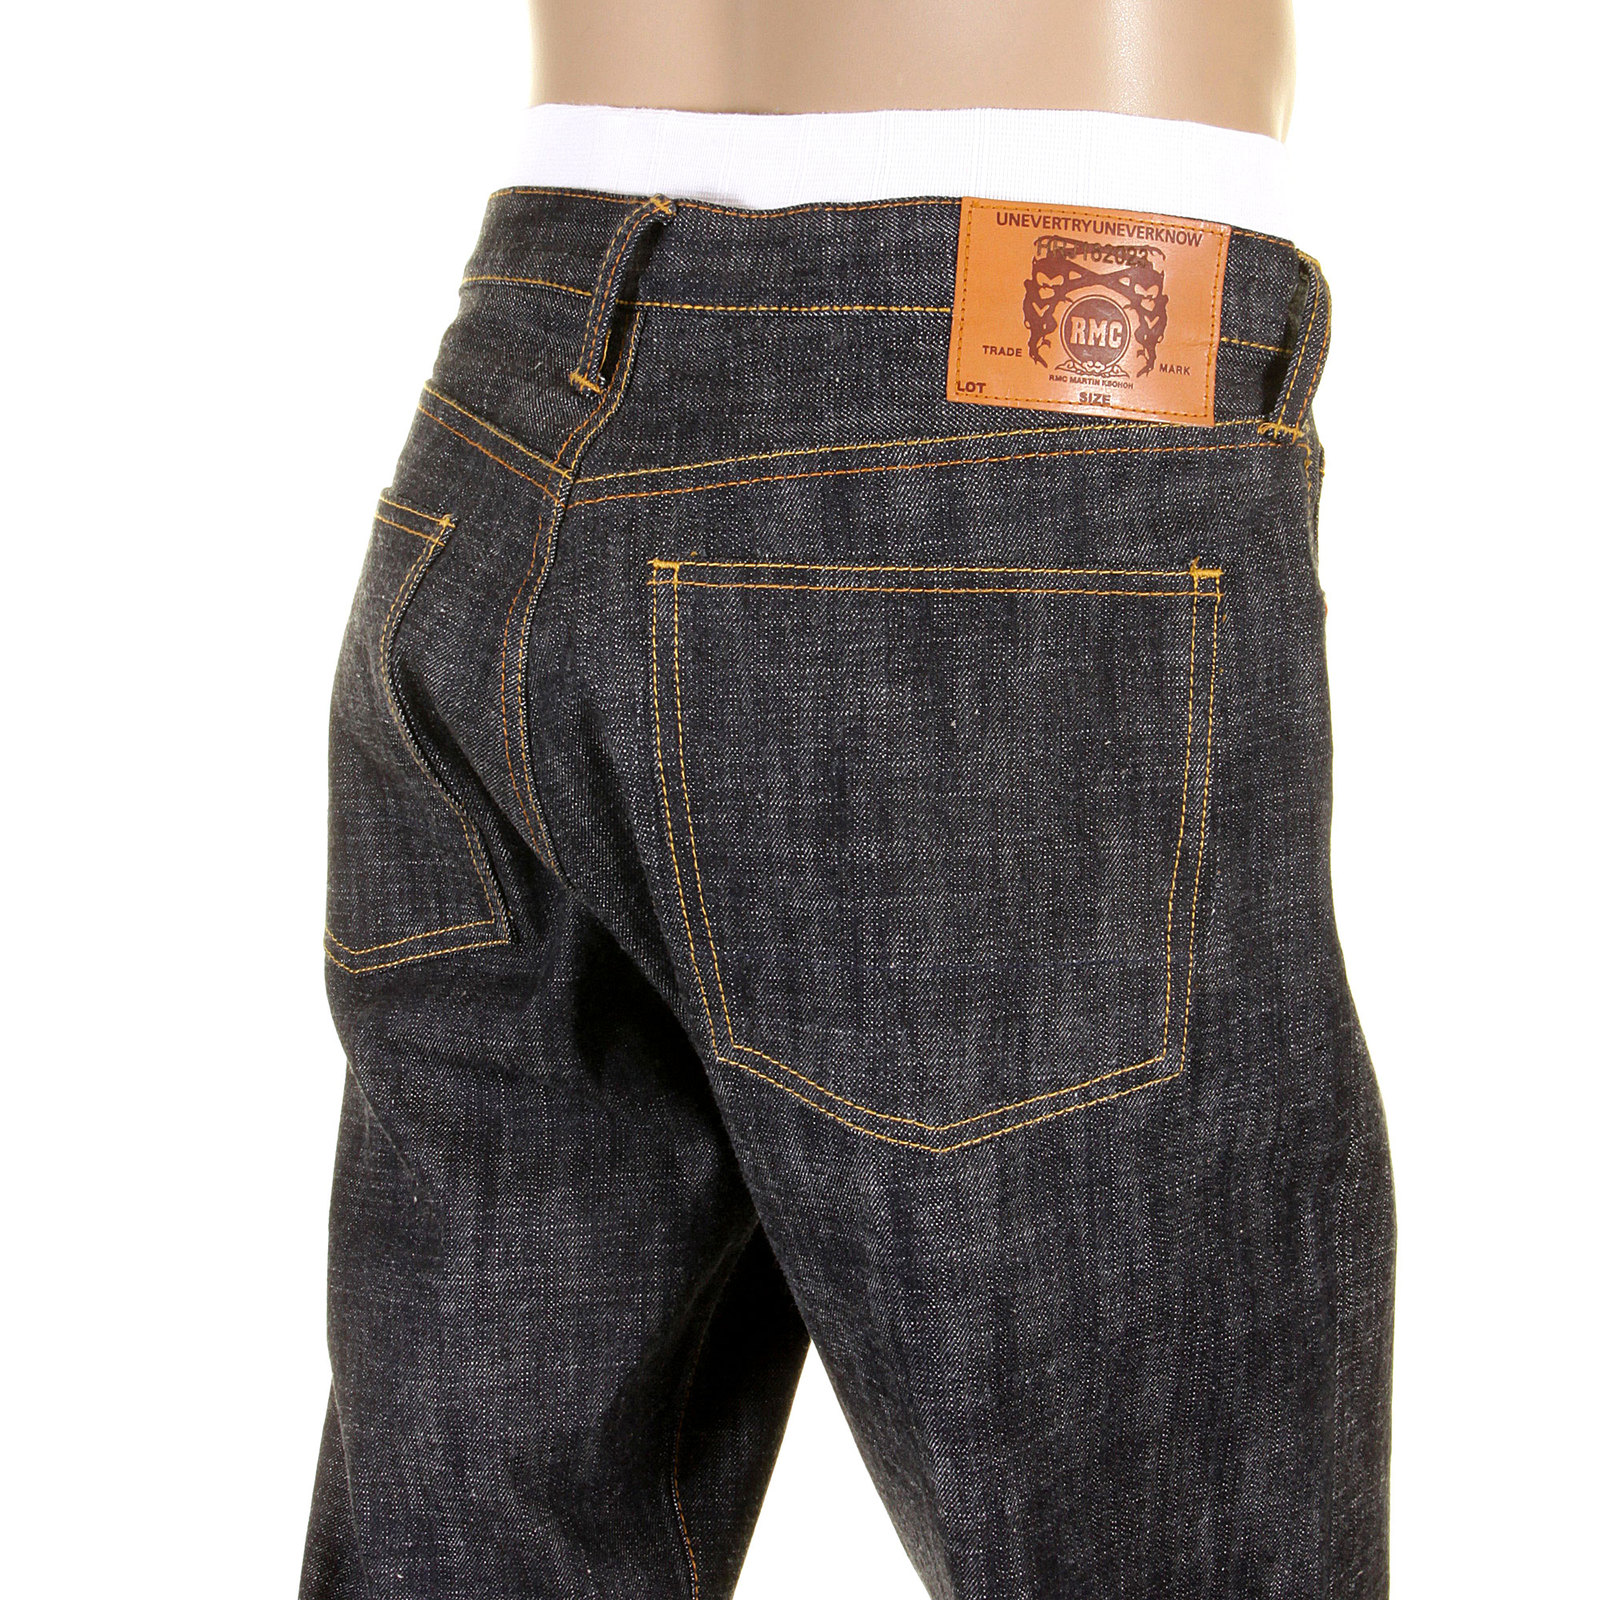 Shop for Black Raw Selvedge Denim Jeans by Red Monkey